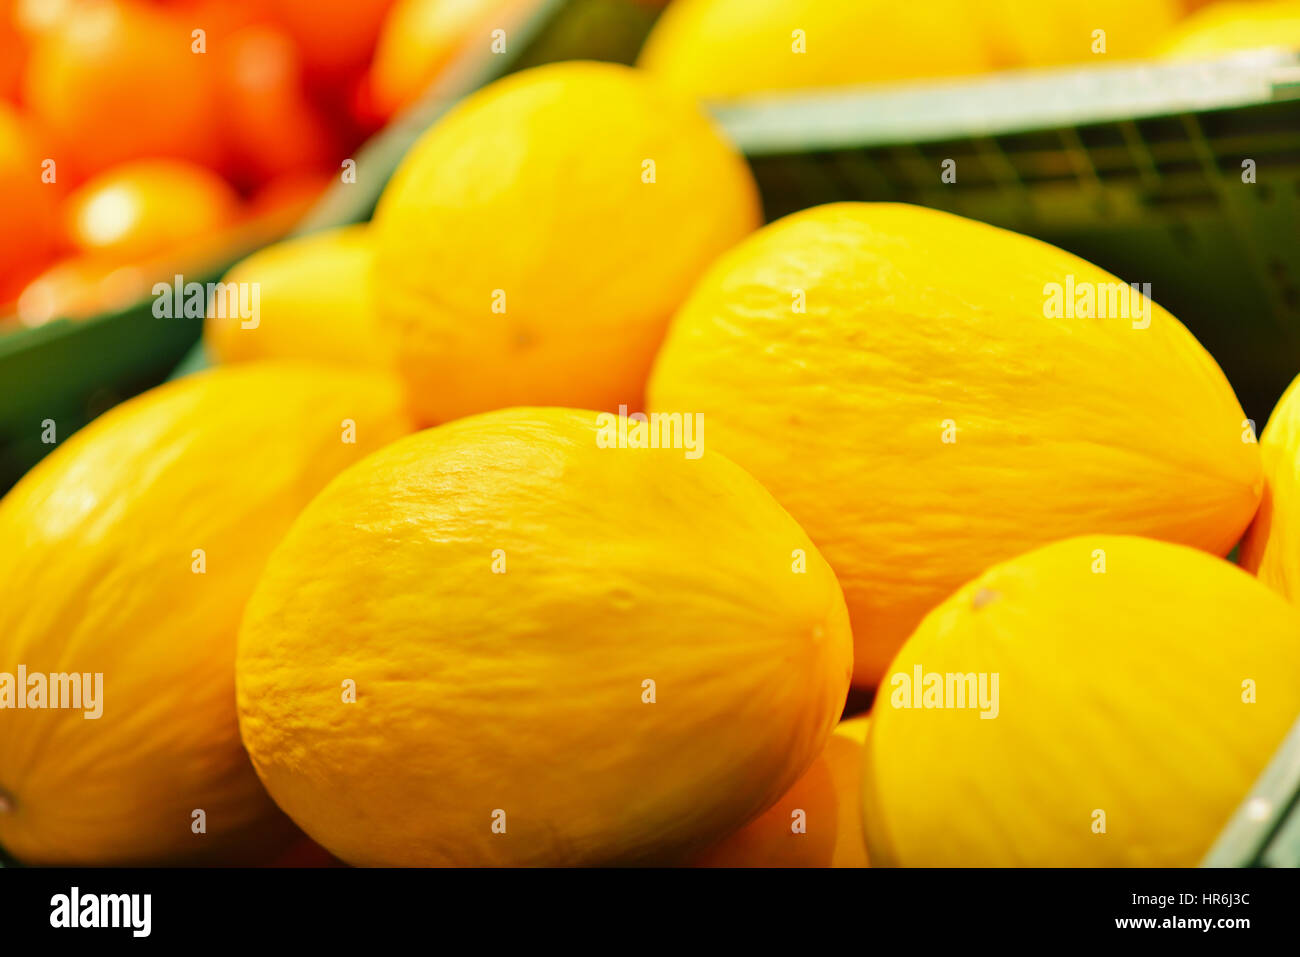 Fresh yellow melons displayed in a greengrocery. - Stock Image